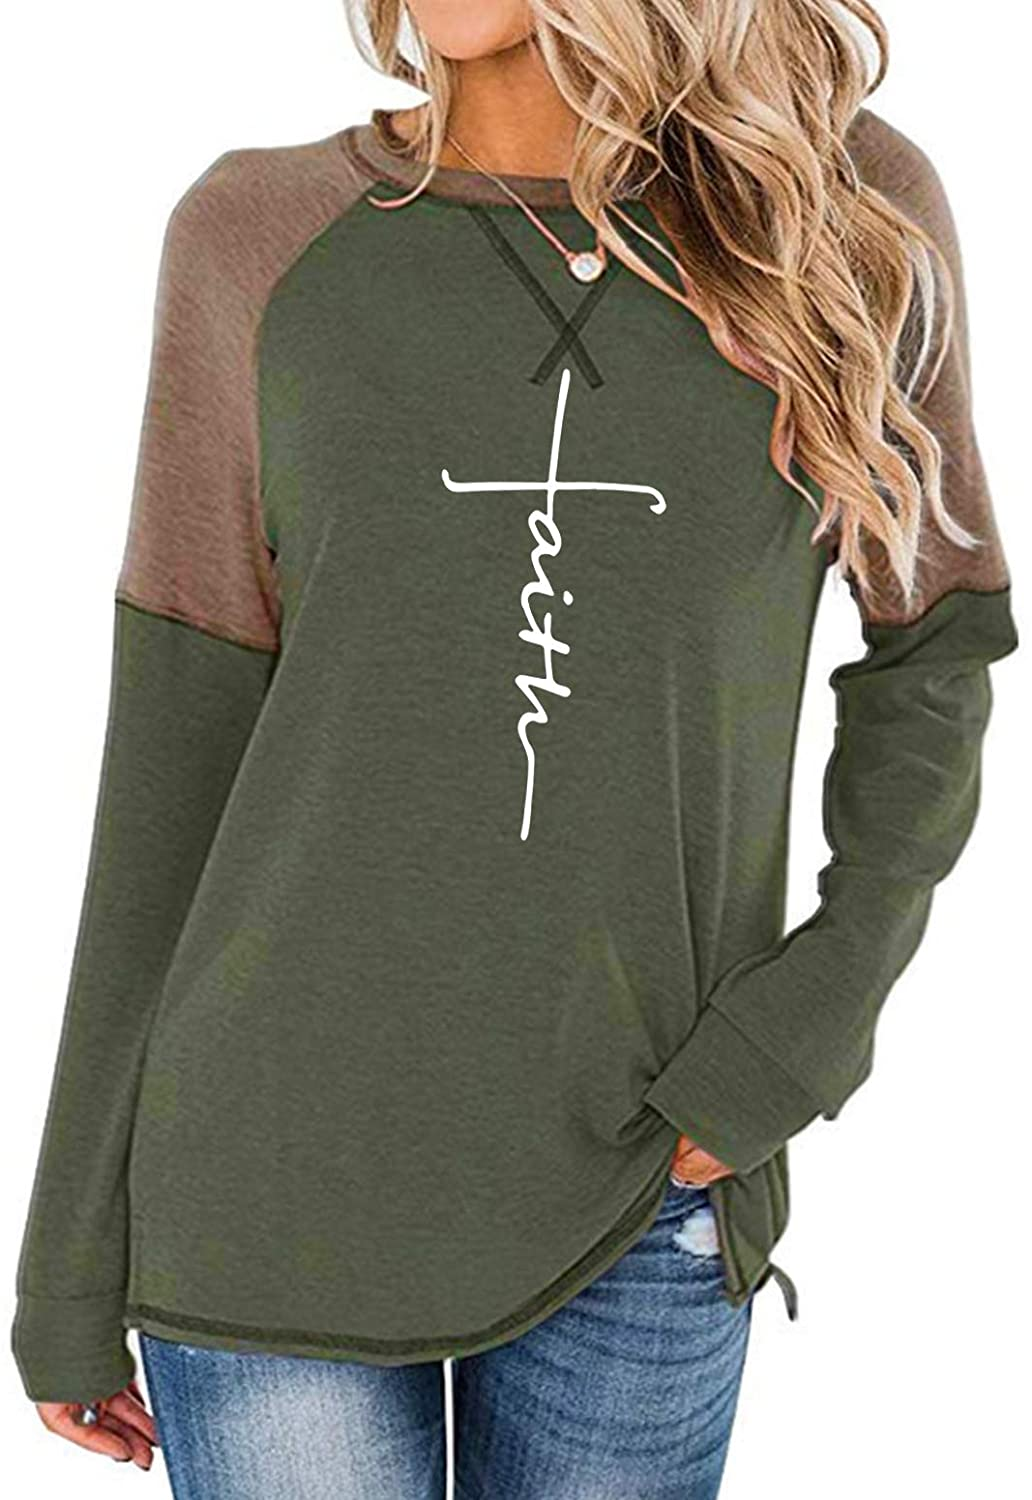 MANSY Women's Letter Print Graphic T Shirt Casual Long Sleeve Crewneck Color Block Side Split Blouse Tunic Tops